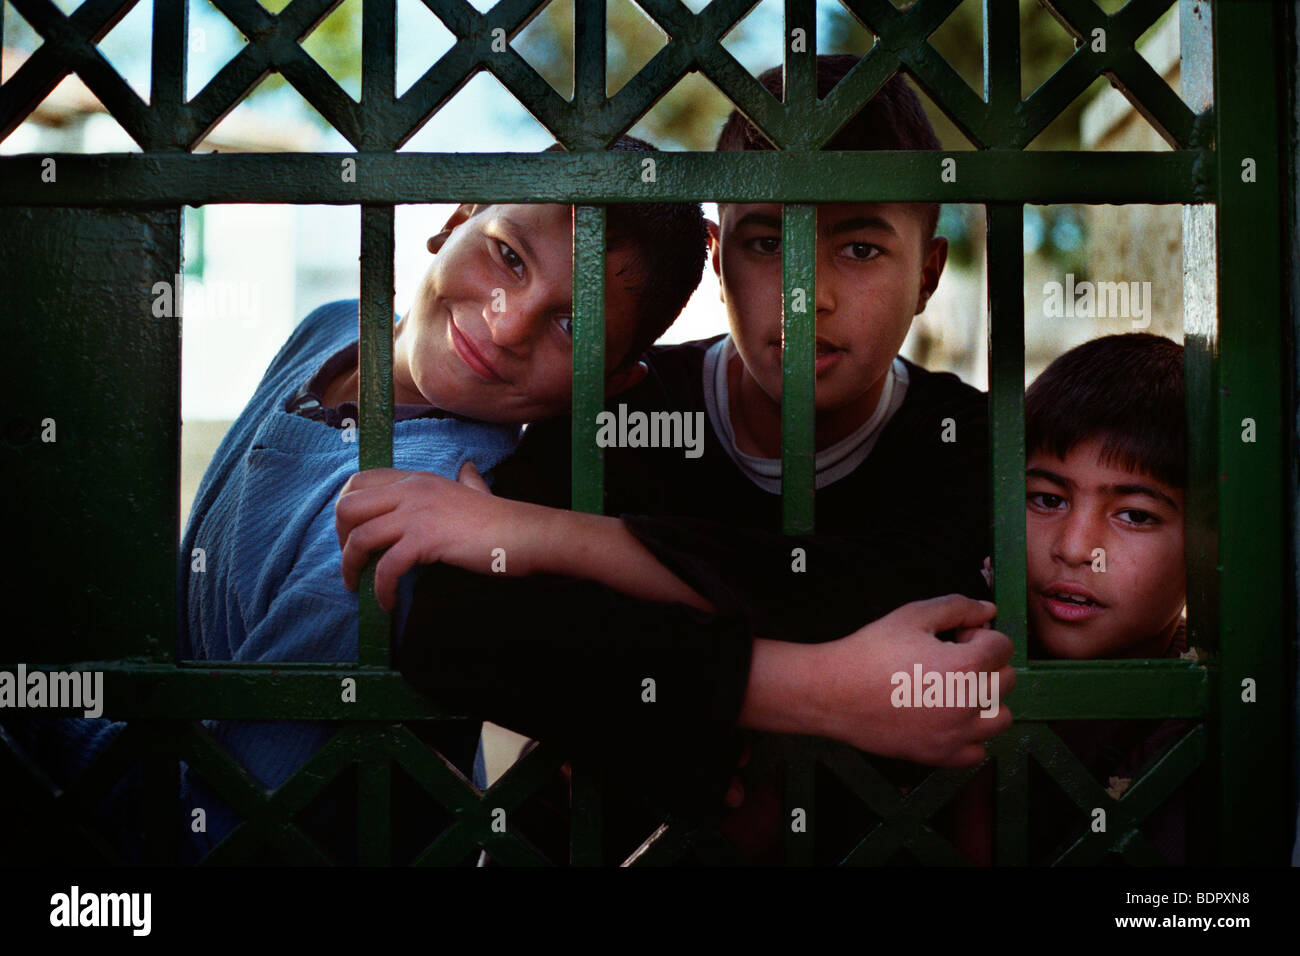 Three palestinian boys behind a grille in Jerusalem - Stock Image